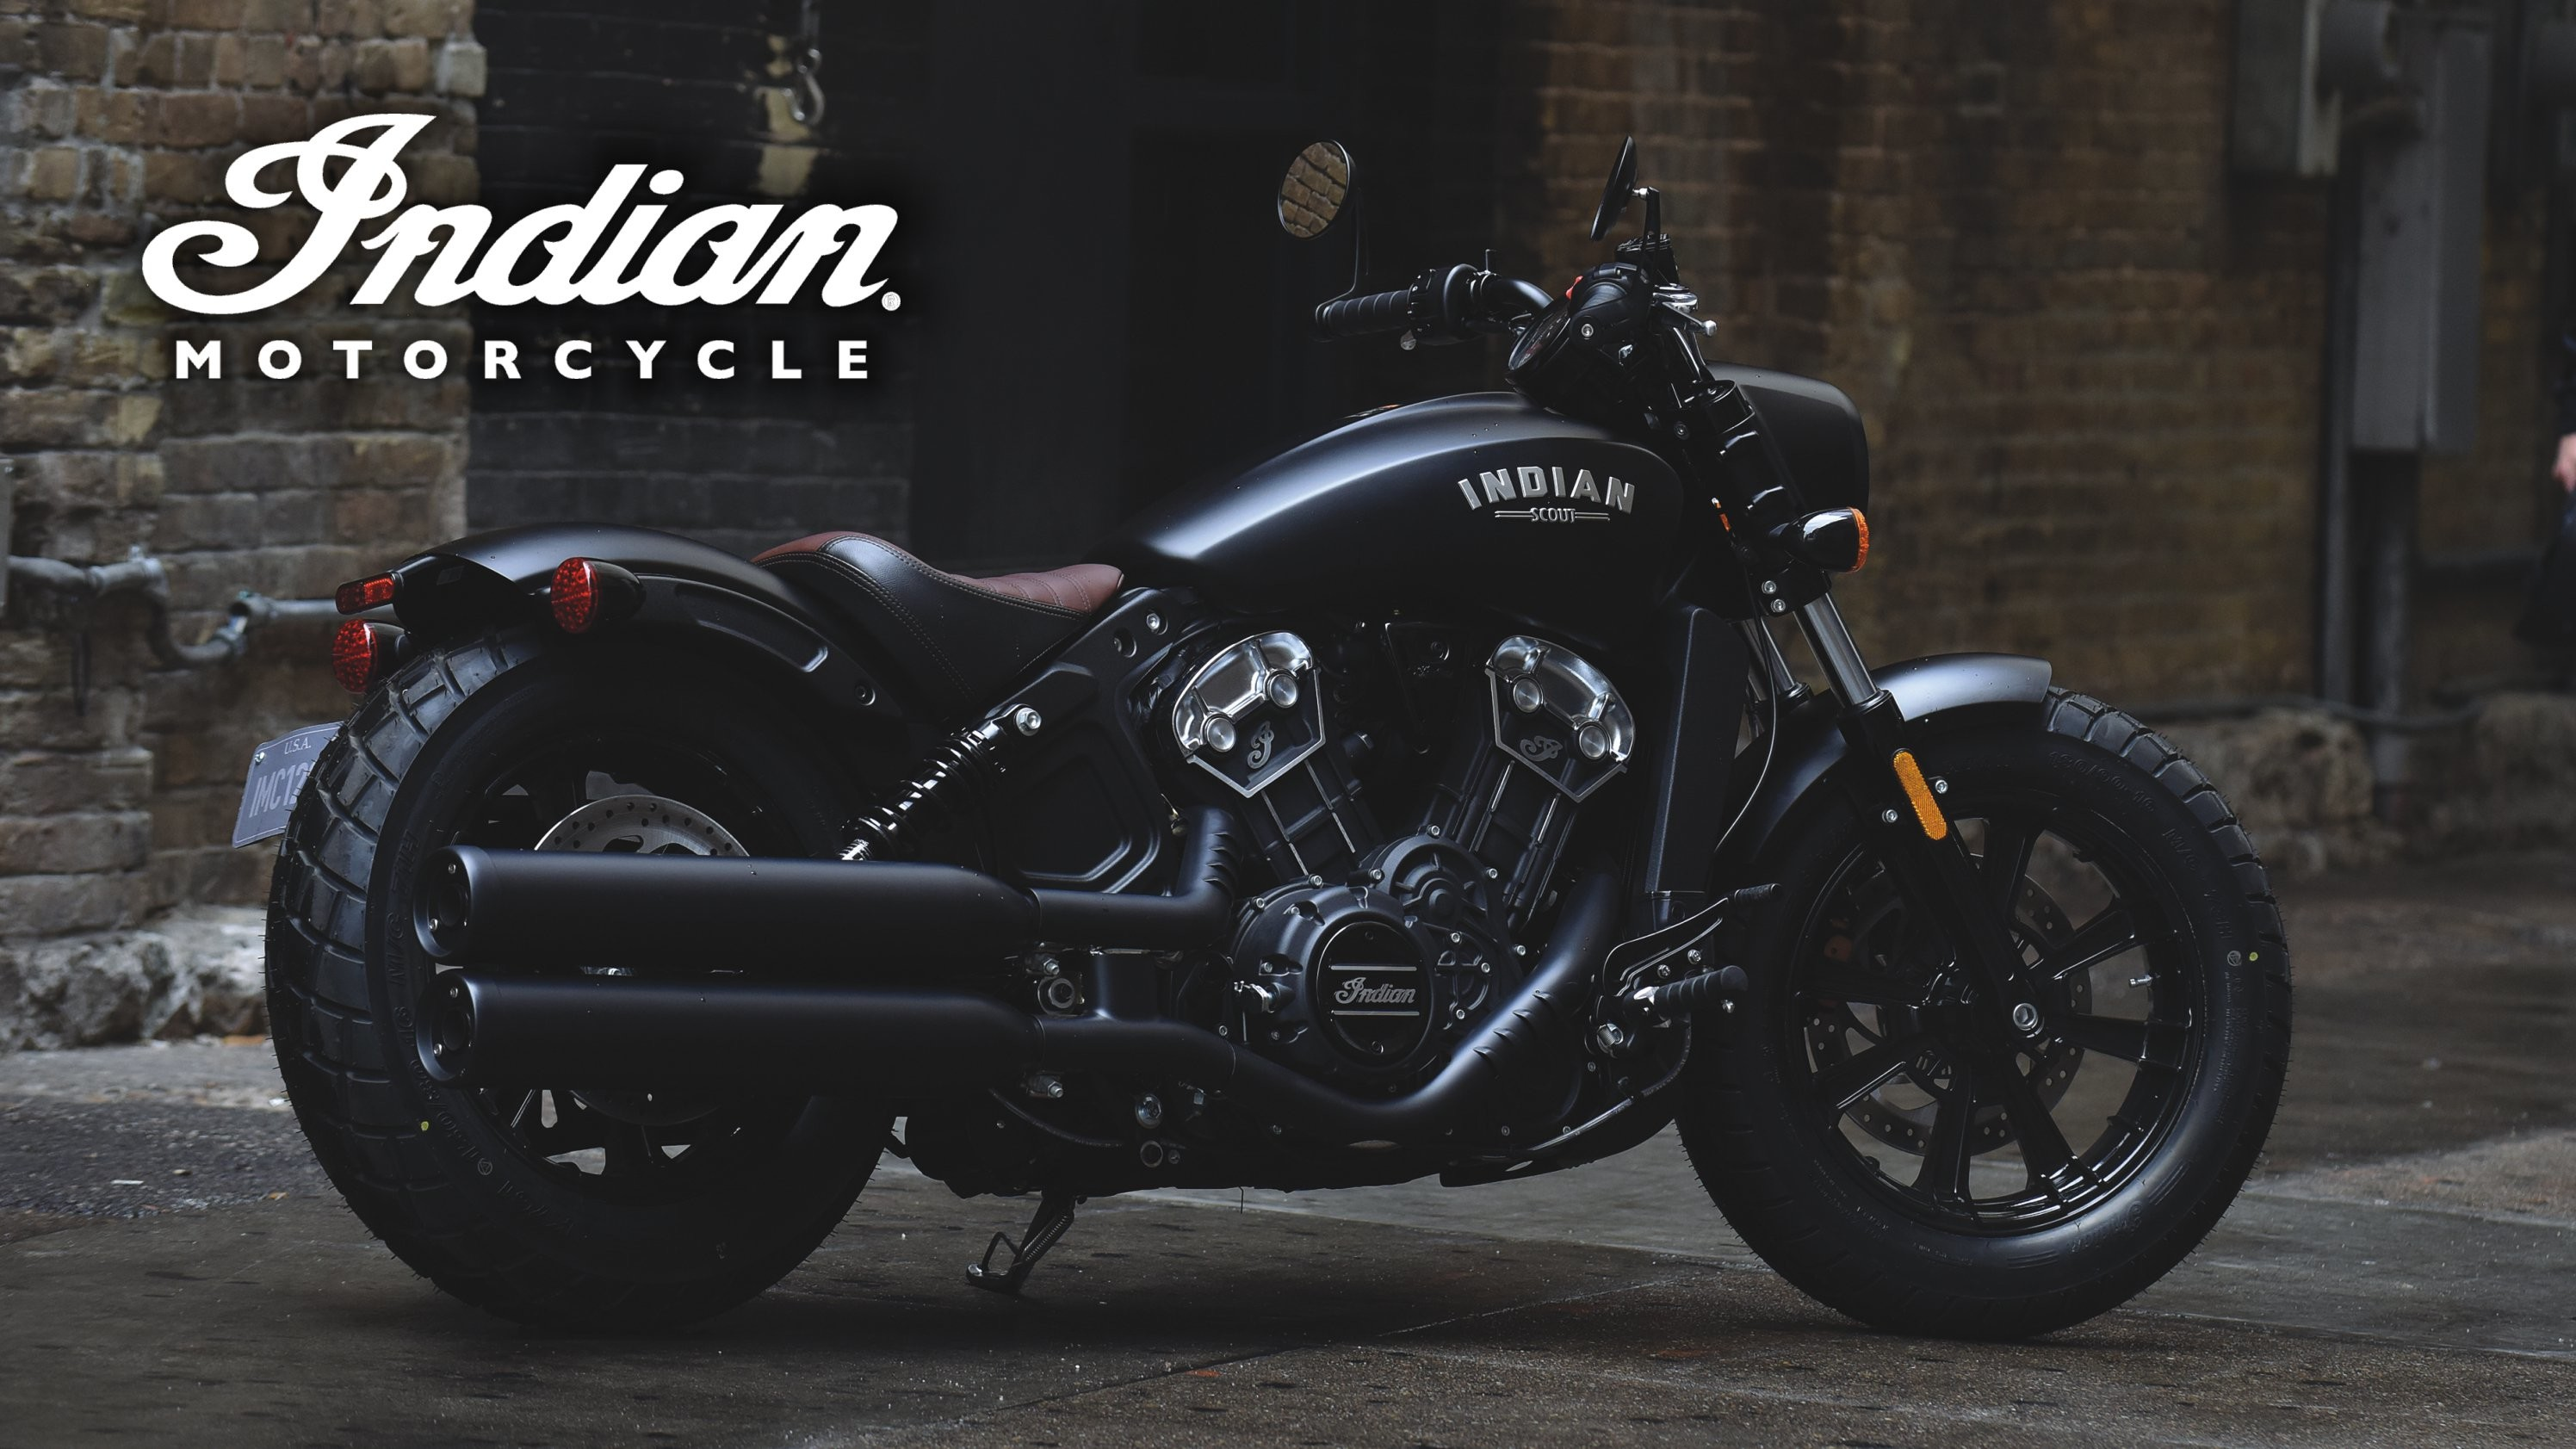 2018 Indian Scout Wallpaper 79 Images